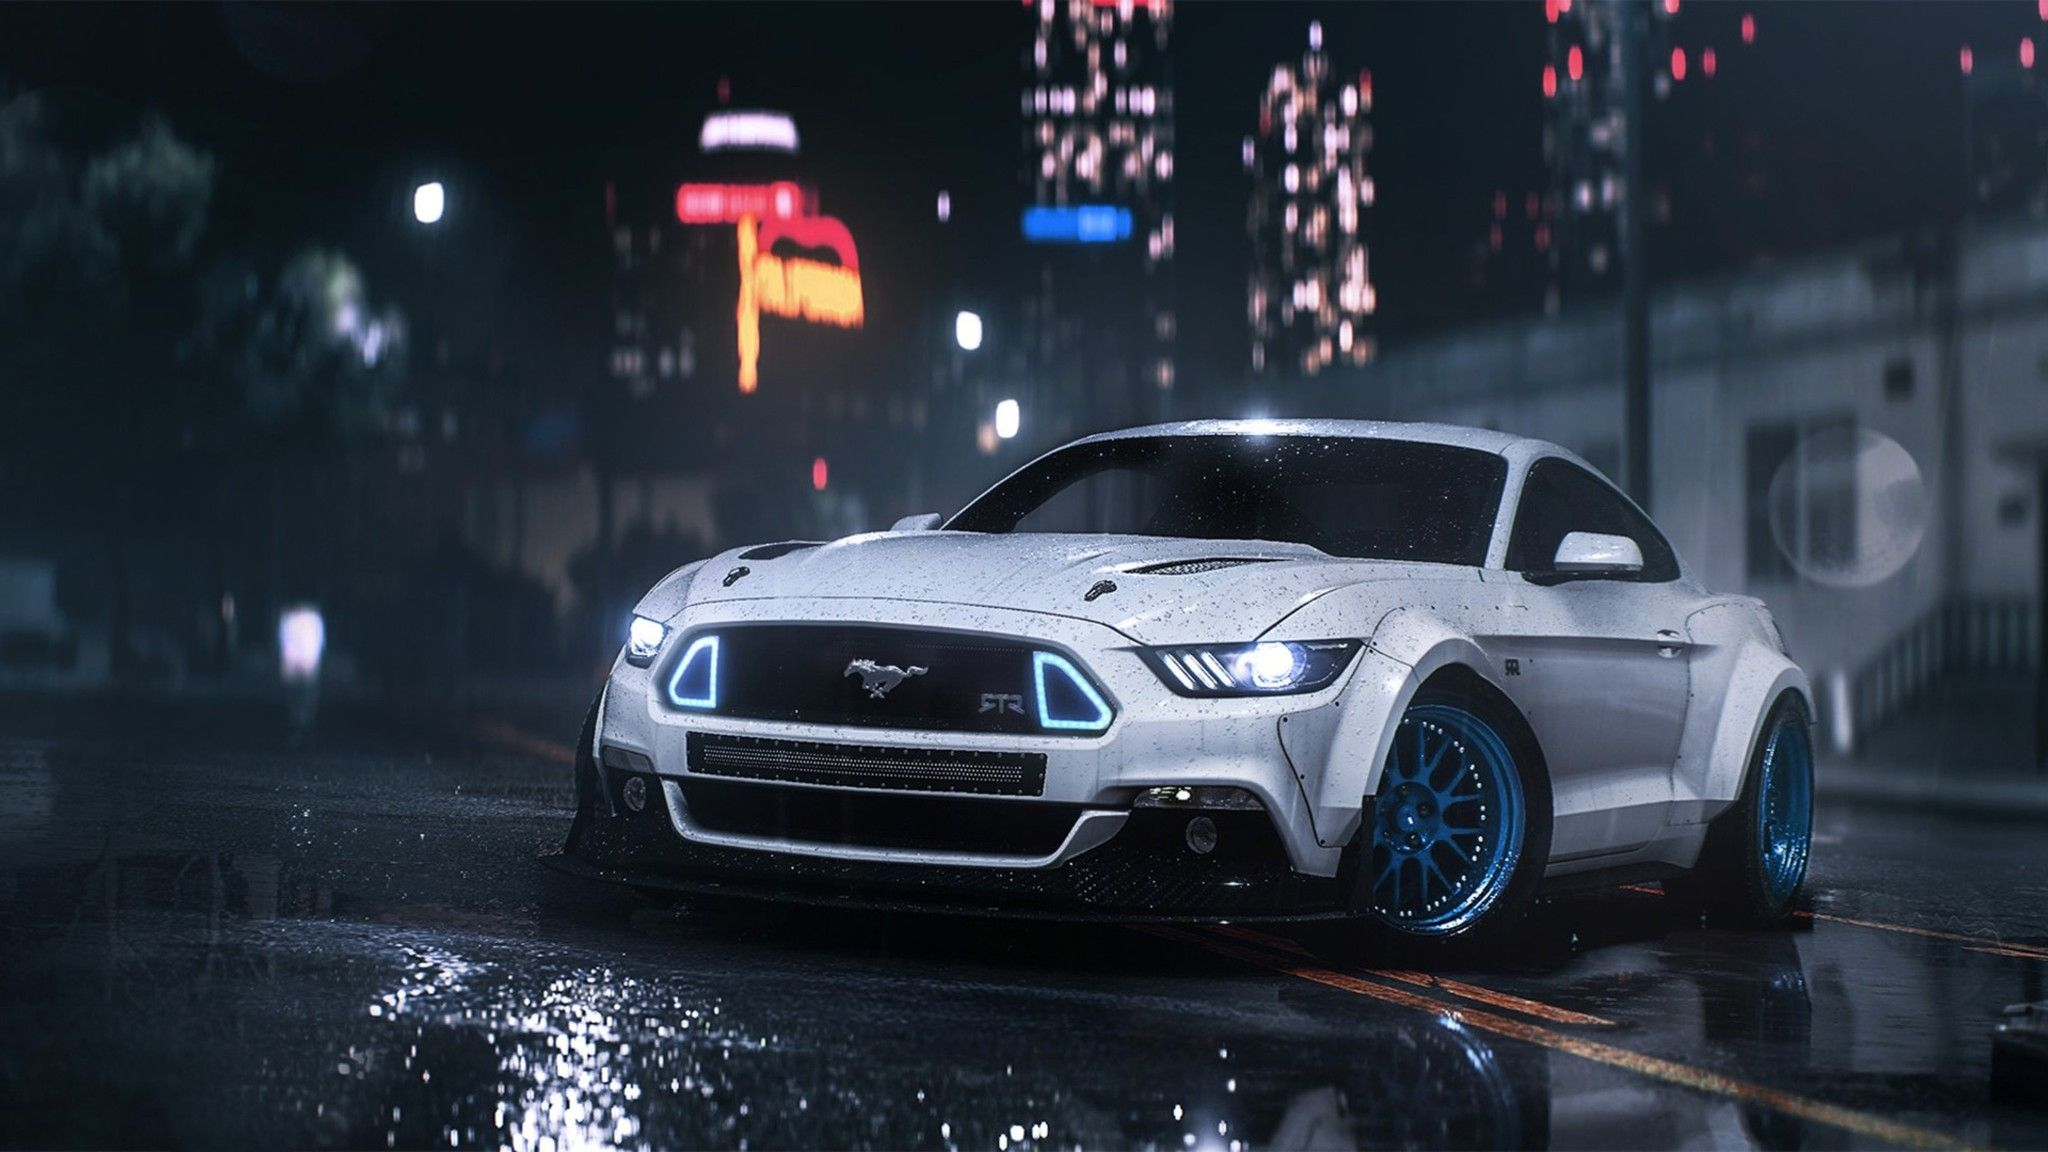 Need For Speed Mustang Hd 2048x1152 Jpg 2048 1152 Mustang